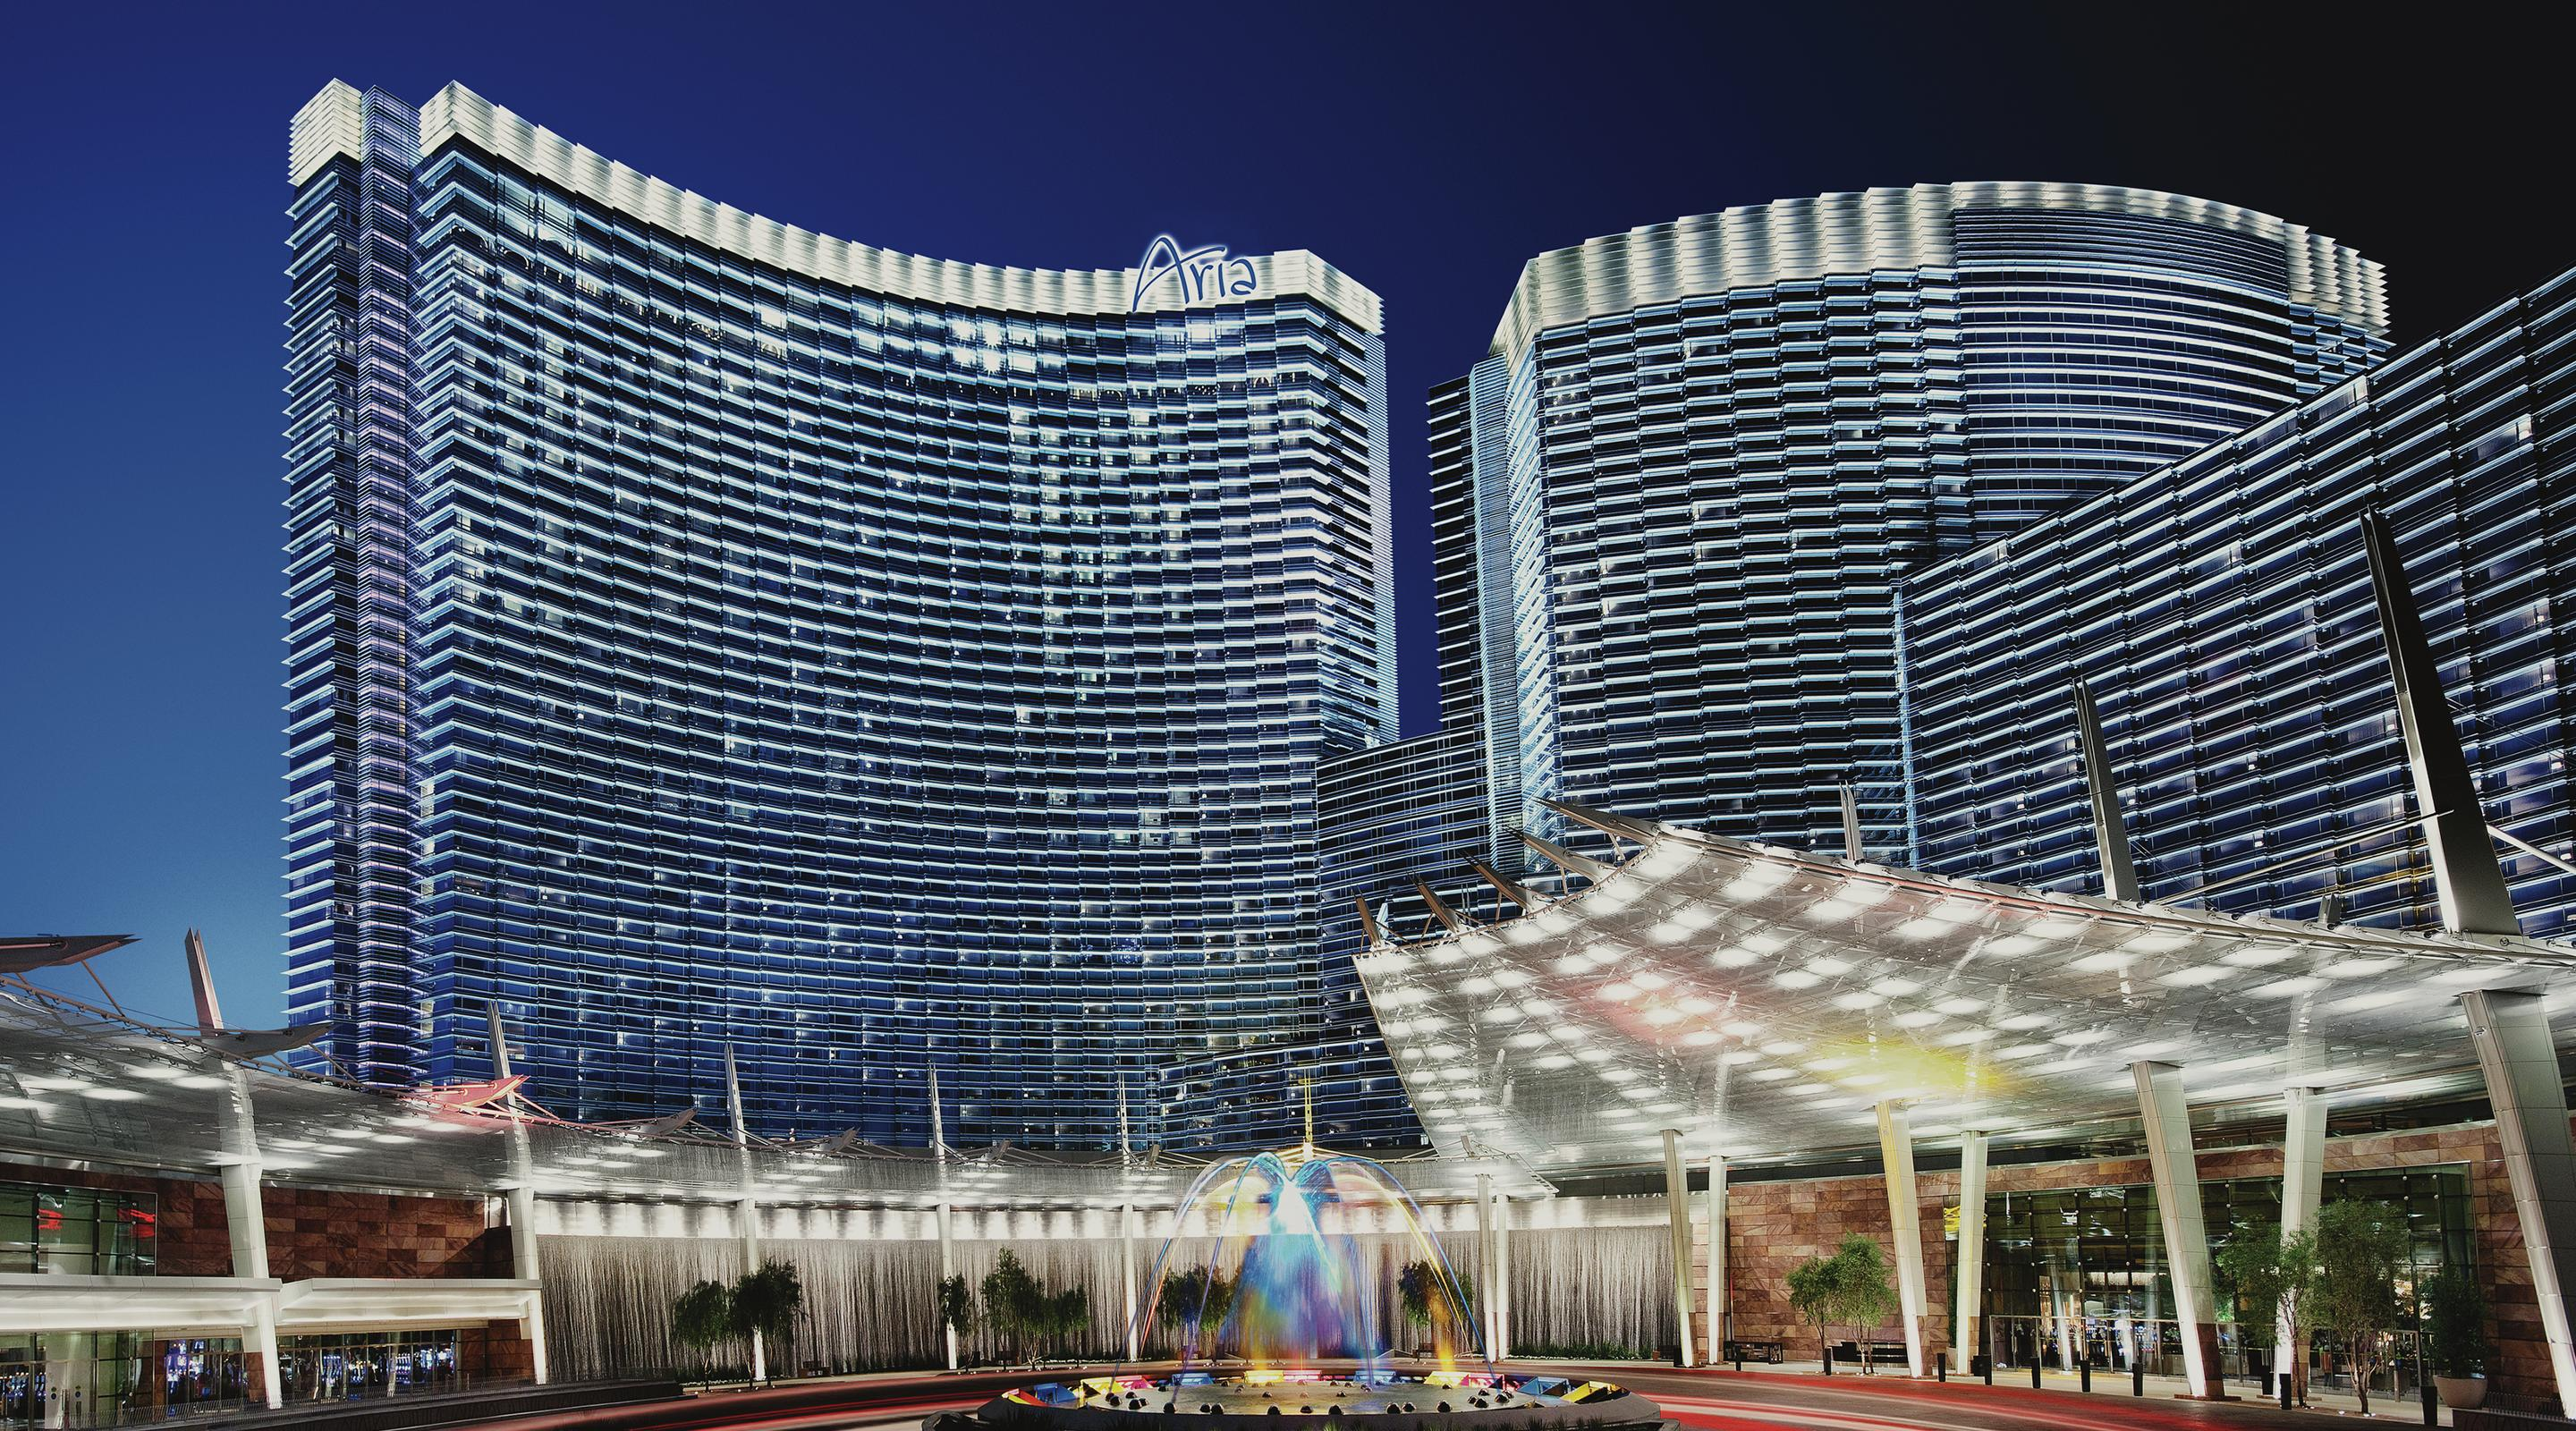 5 Ways ARIA Resort & Casino is Translating Technology to Hospitality